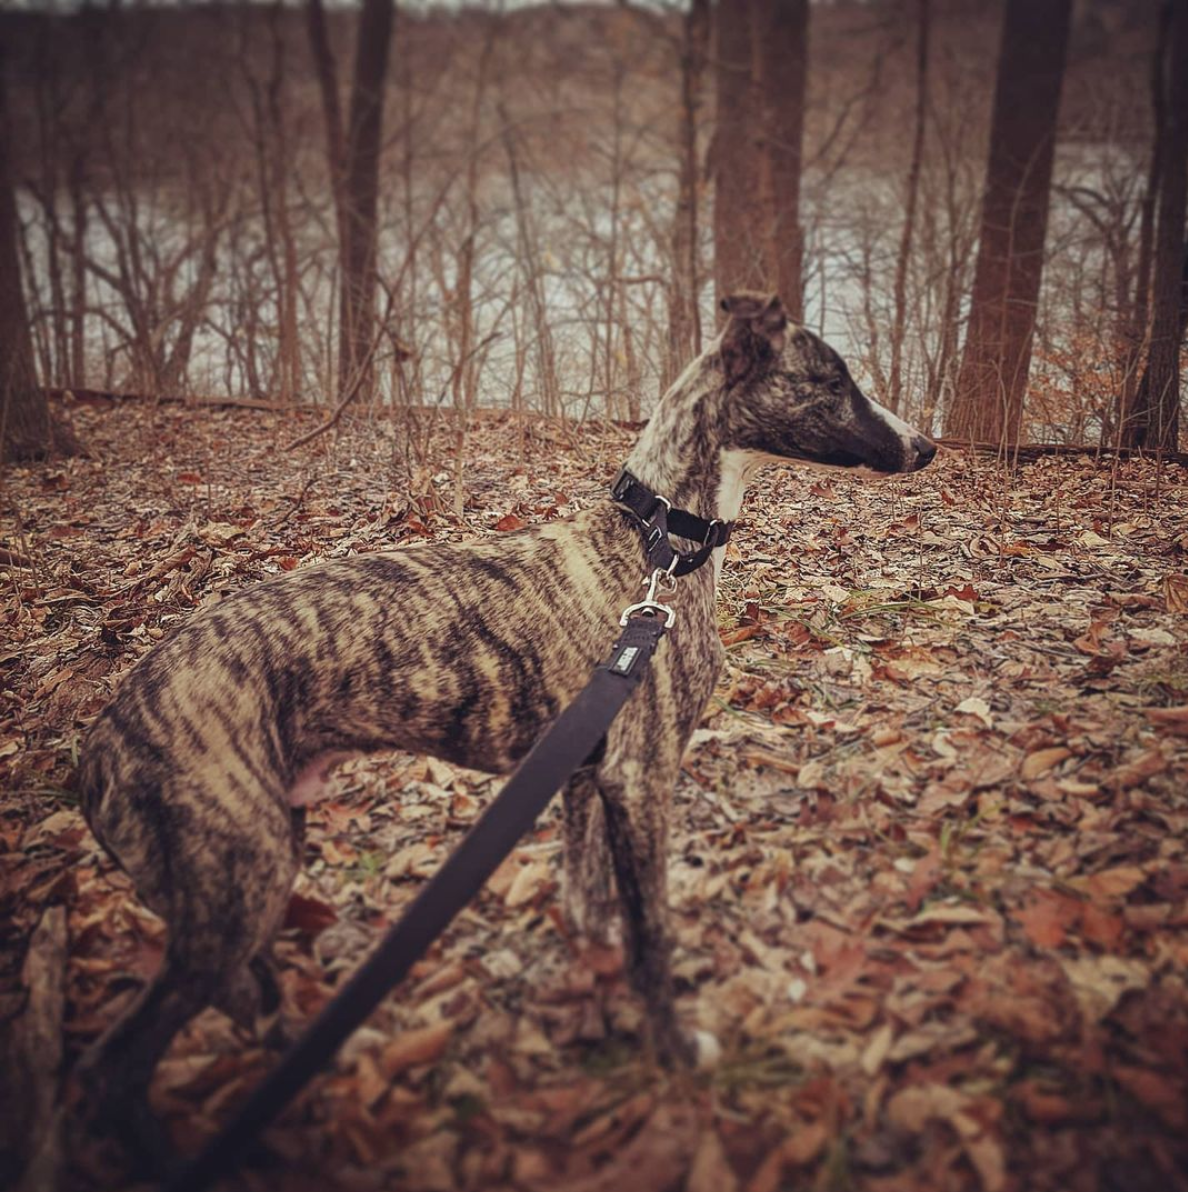 Photograph of a beautiful brindle Whippet in the autumn forest, surrounded by fall leaves.